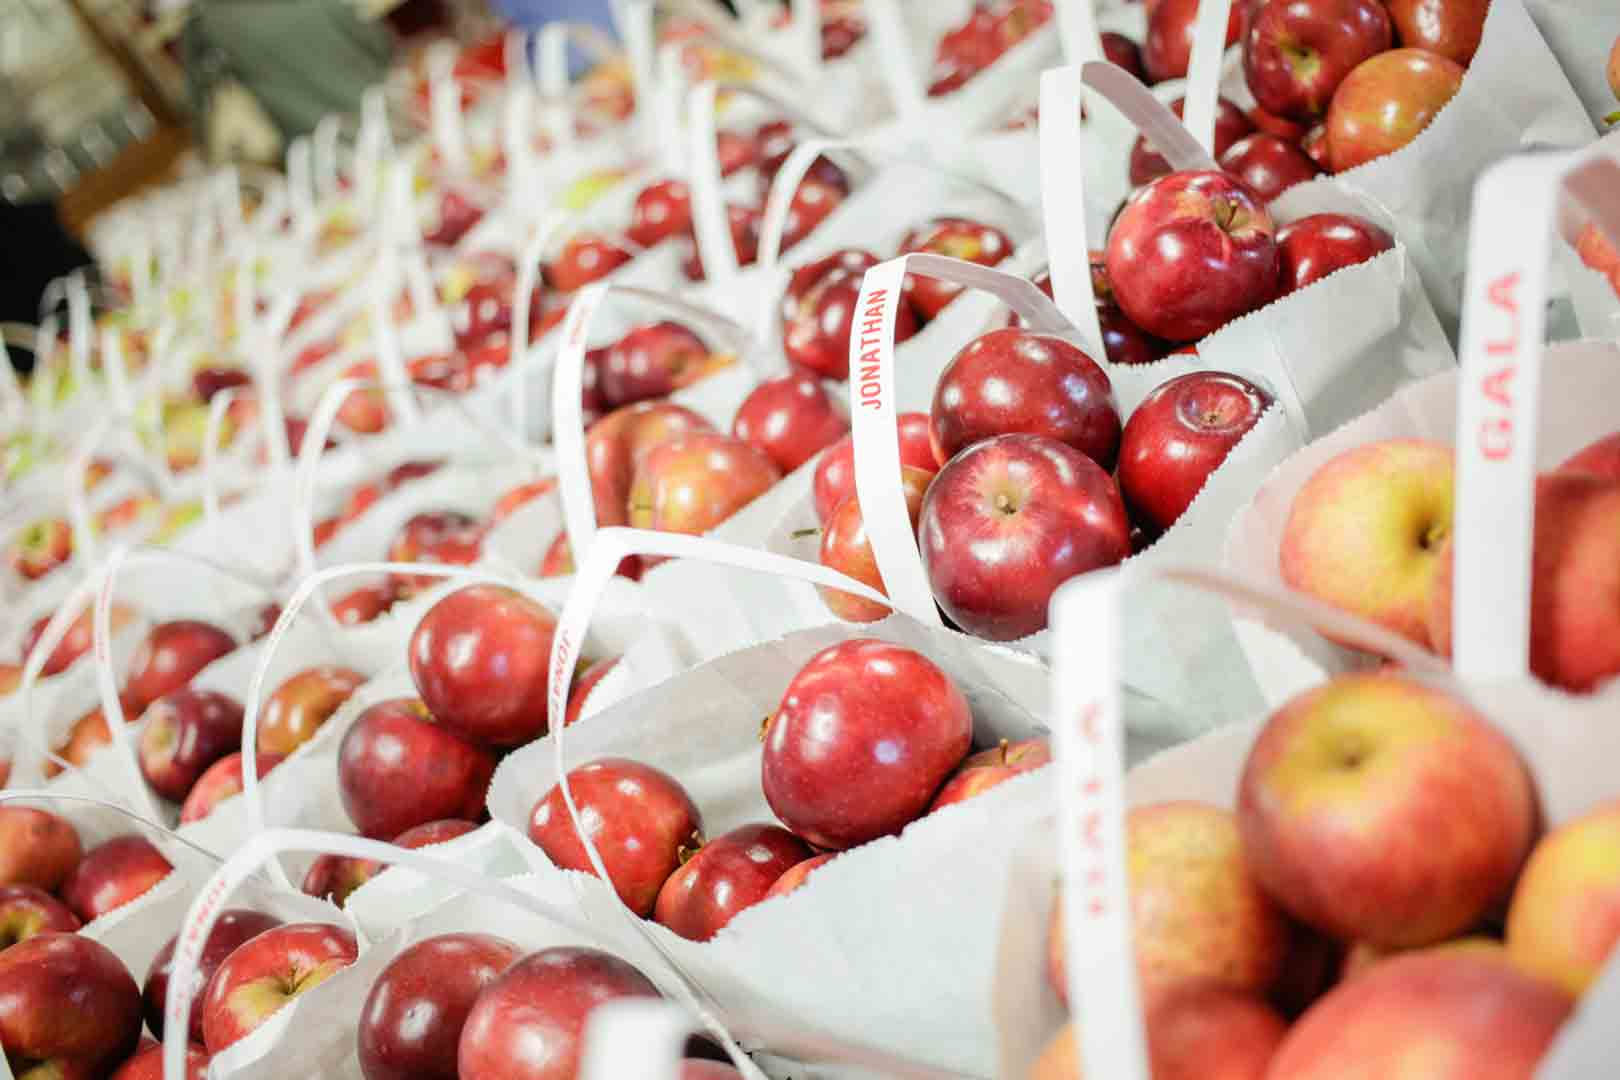 Varieties of apples available for purchase based on season at Plymouth Cider Mill.